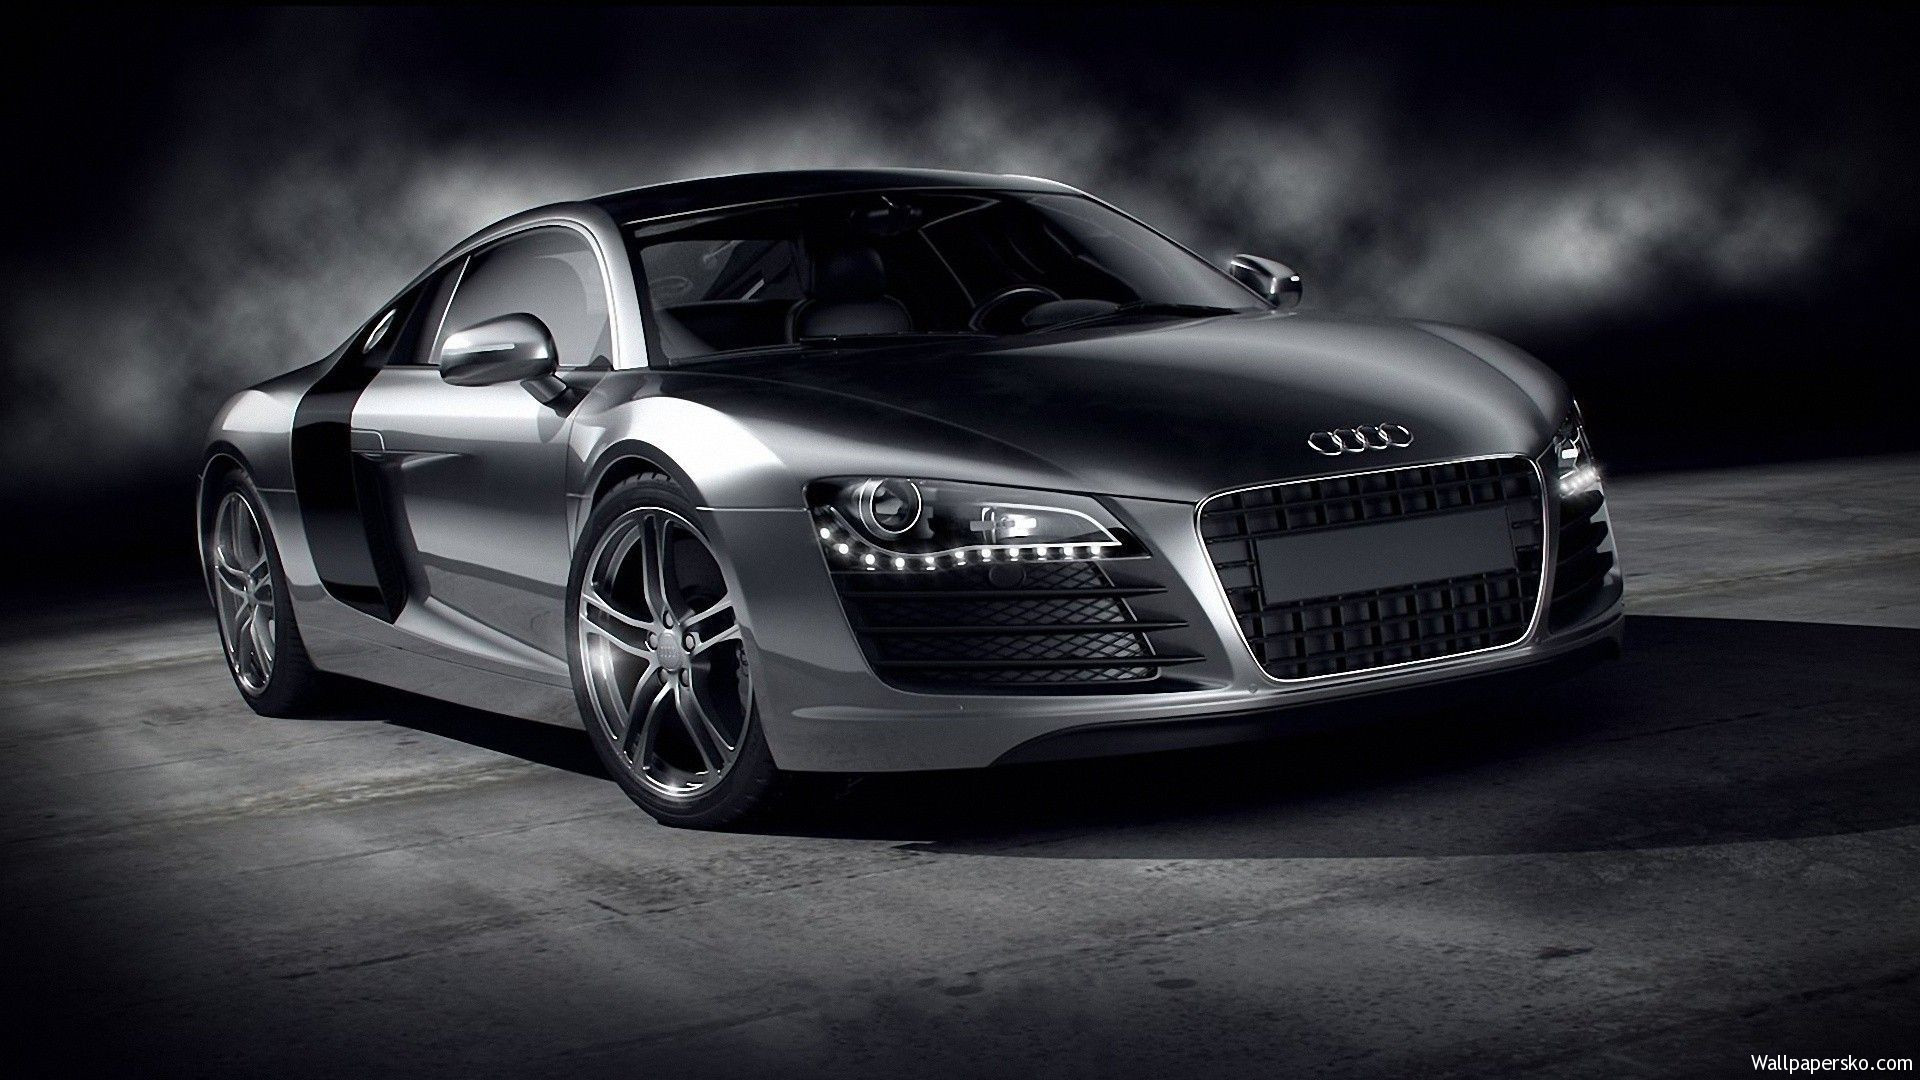 Black Audi R8 Wallpaper Hd Wallpapers Download